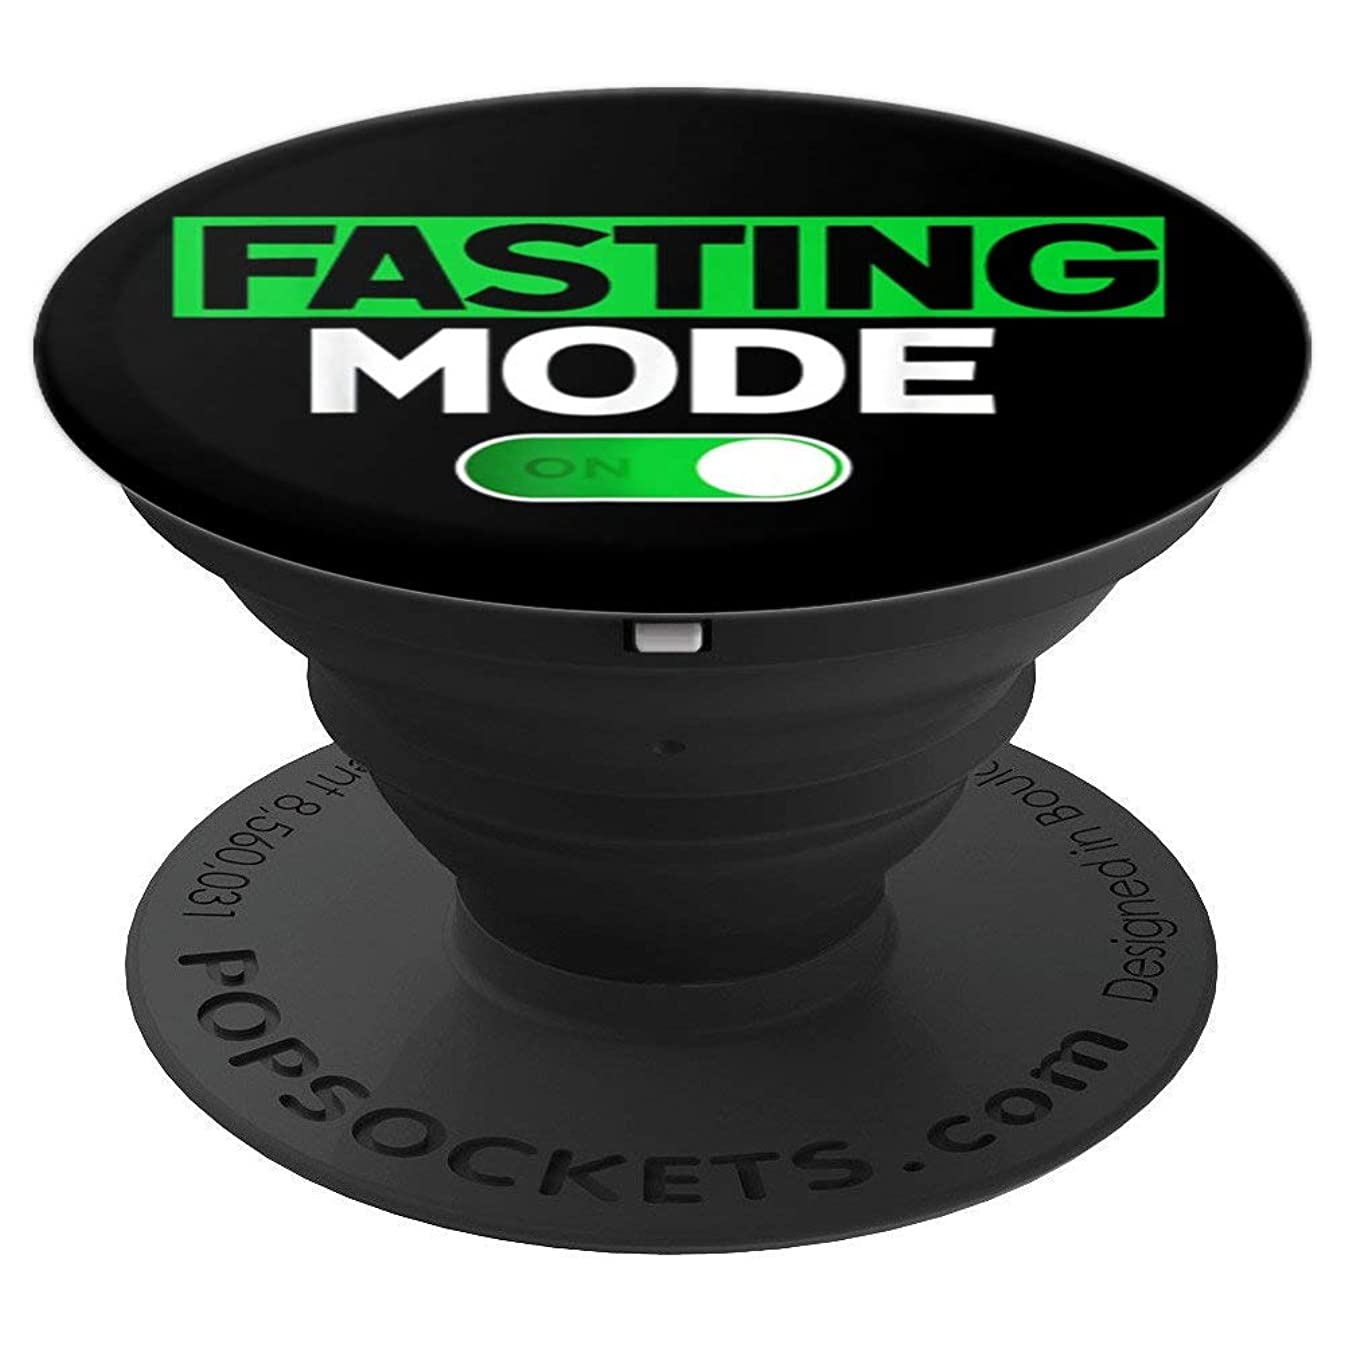 Arabic Fasting Mode On Ramadan Mubarak Kareem T-Shirt Gifts - PopSockets Grip and Stand for Phones and Tablets